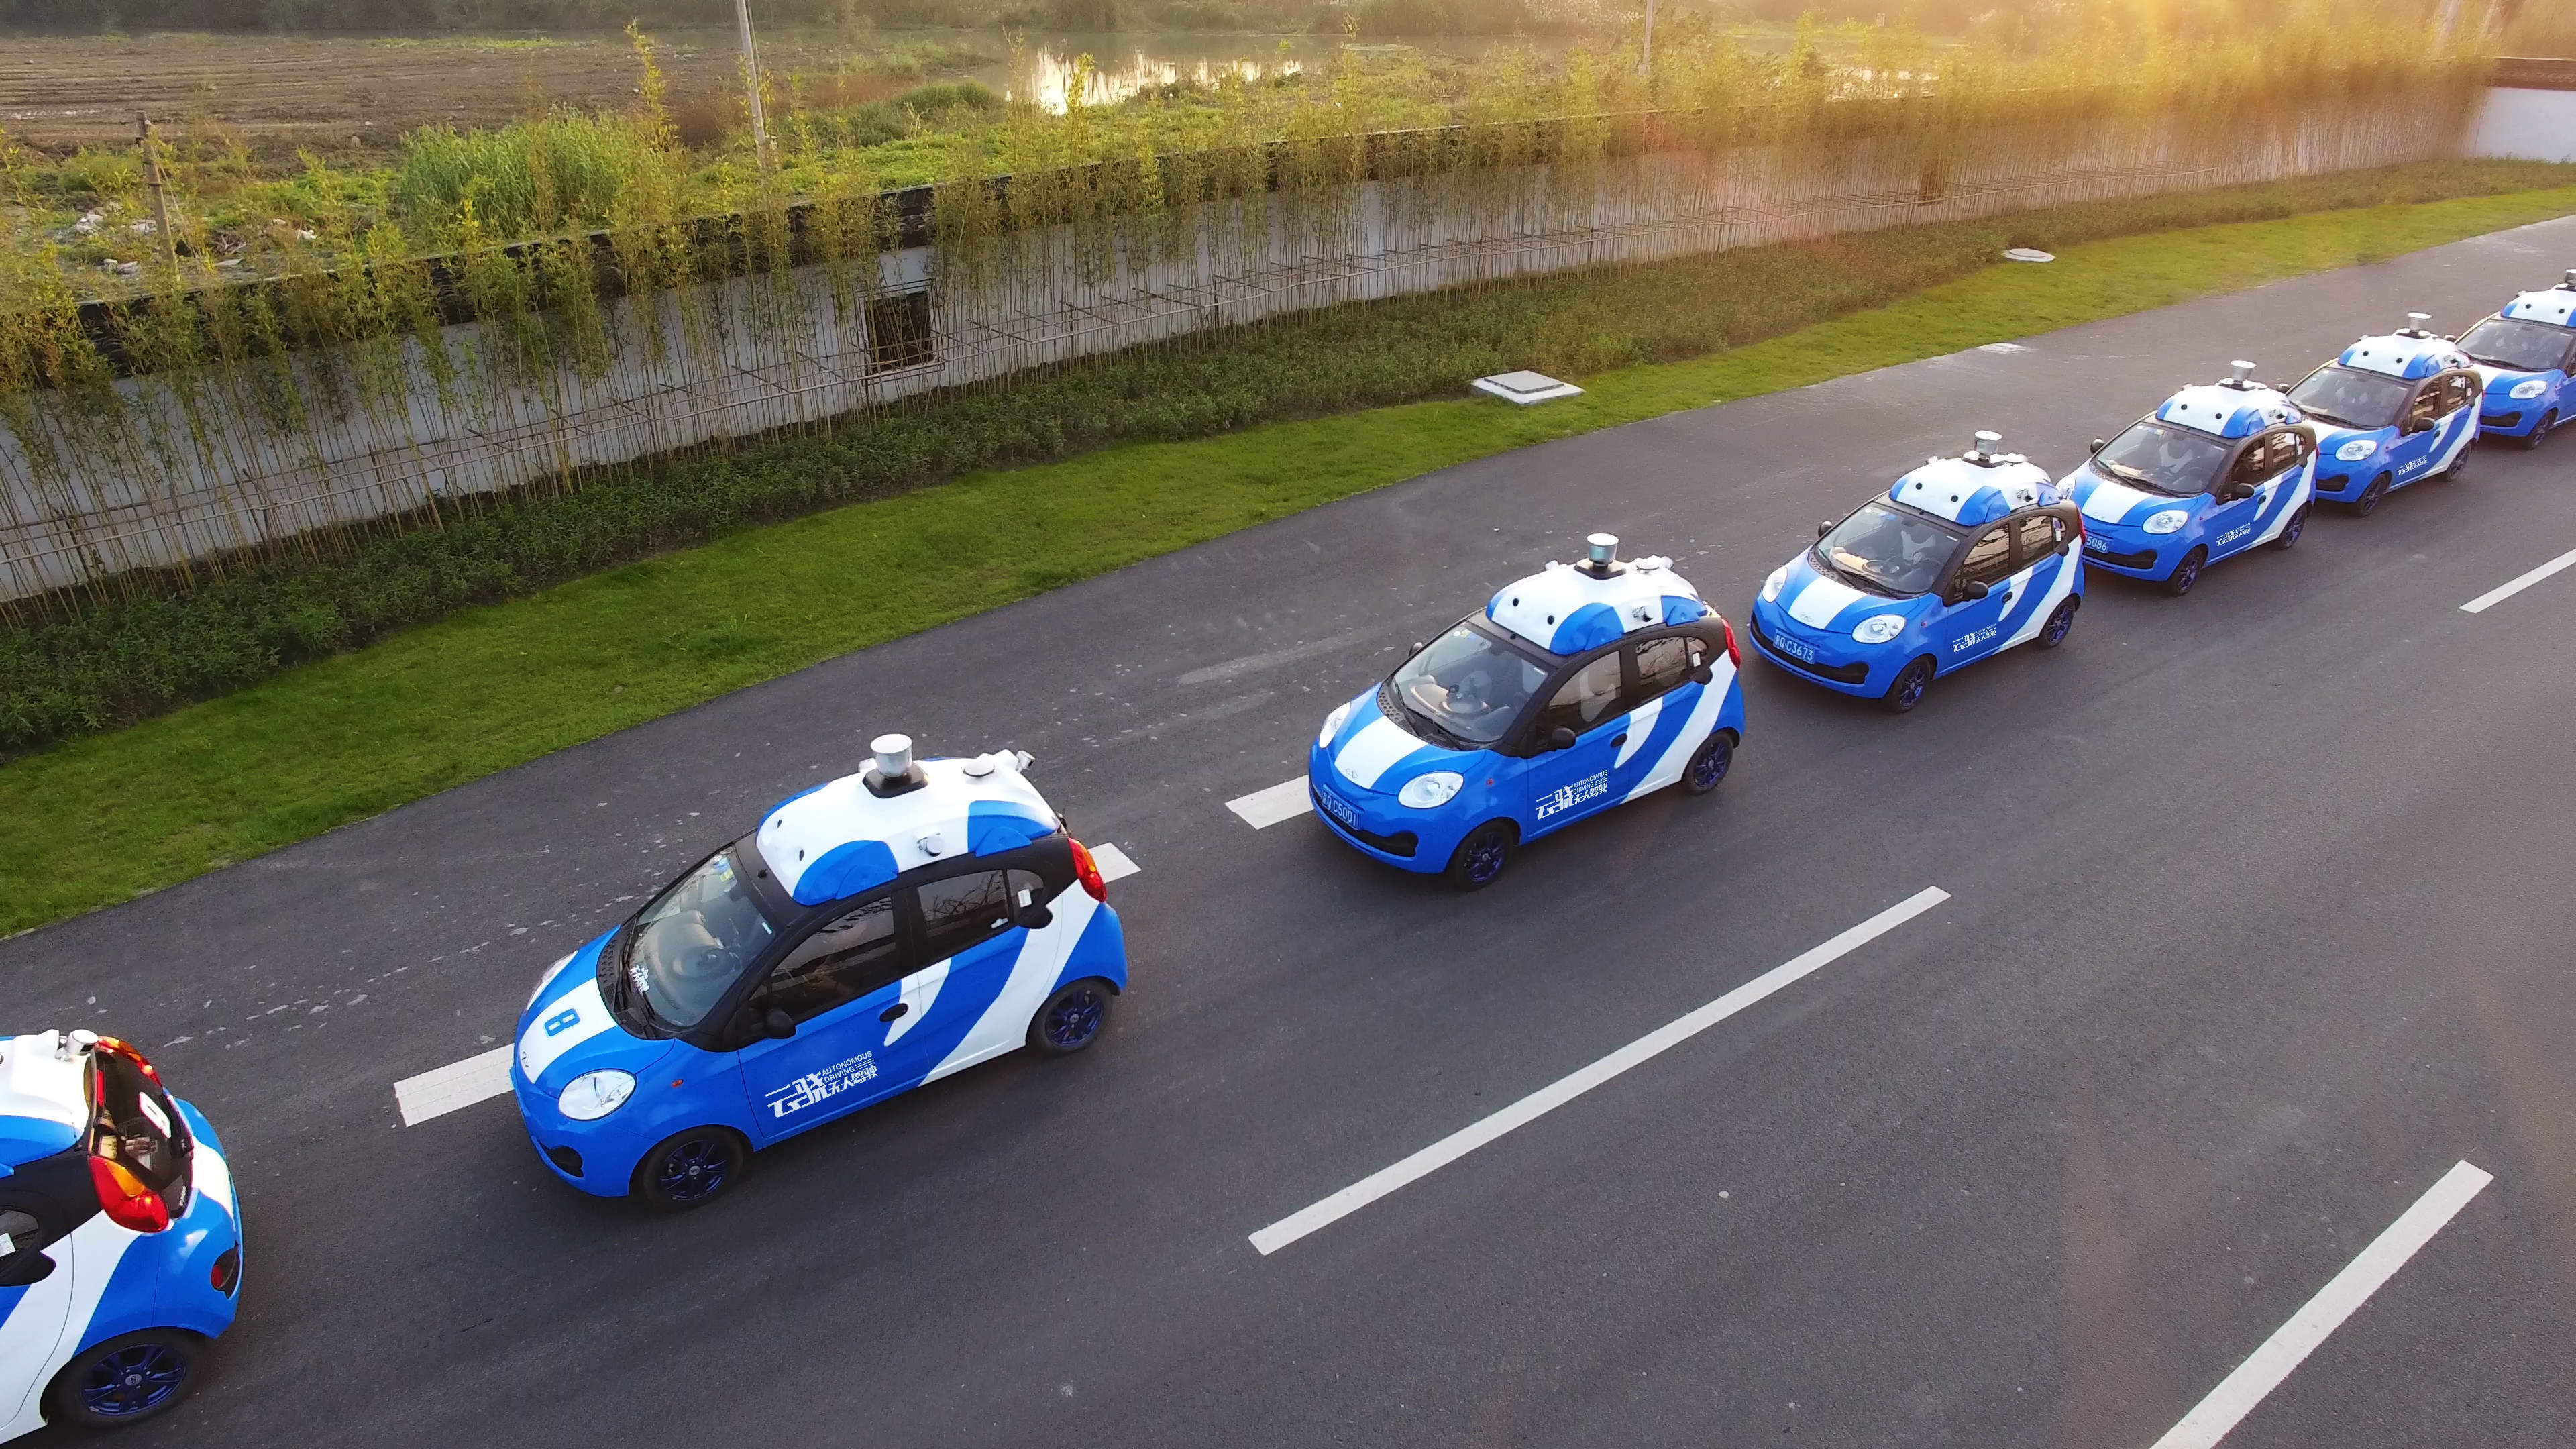 Chinese firm Baidu wants to open up its self-driving technology